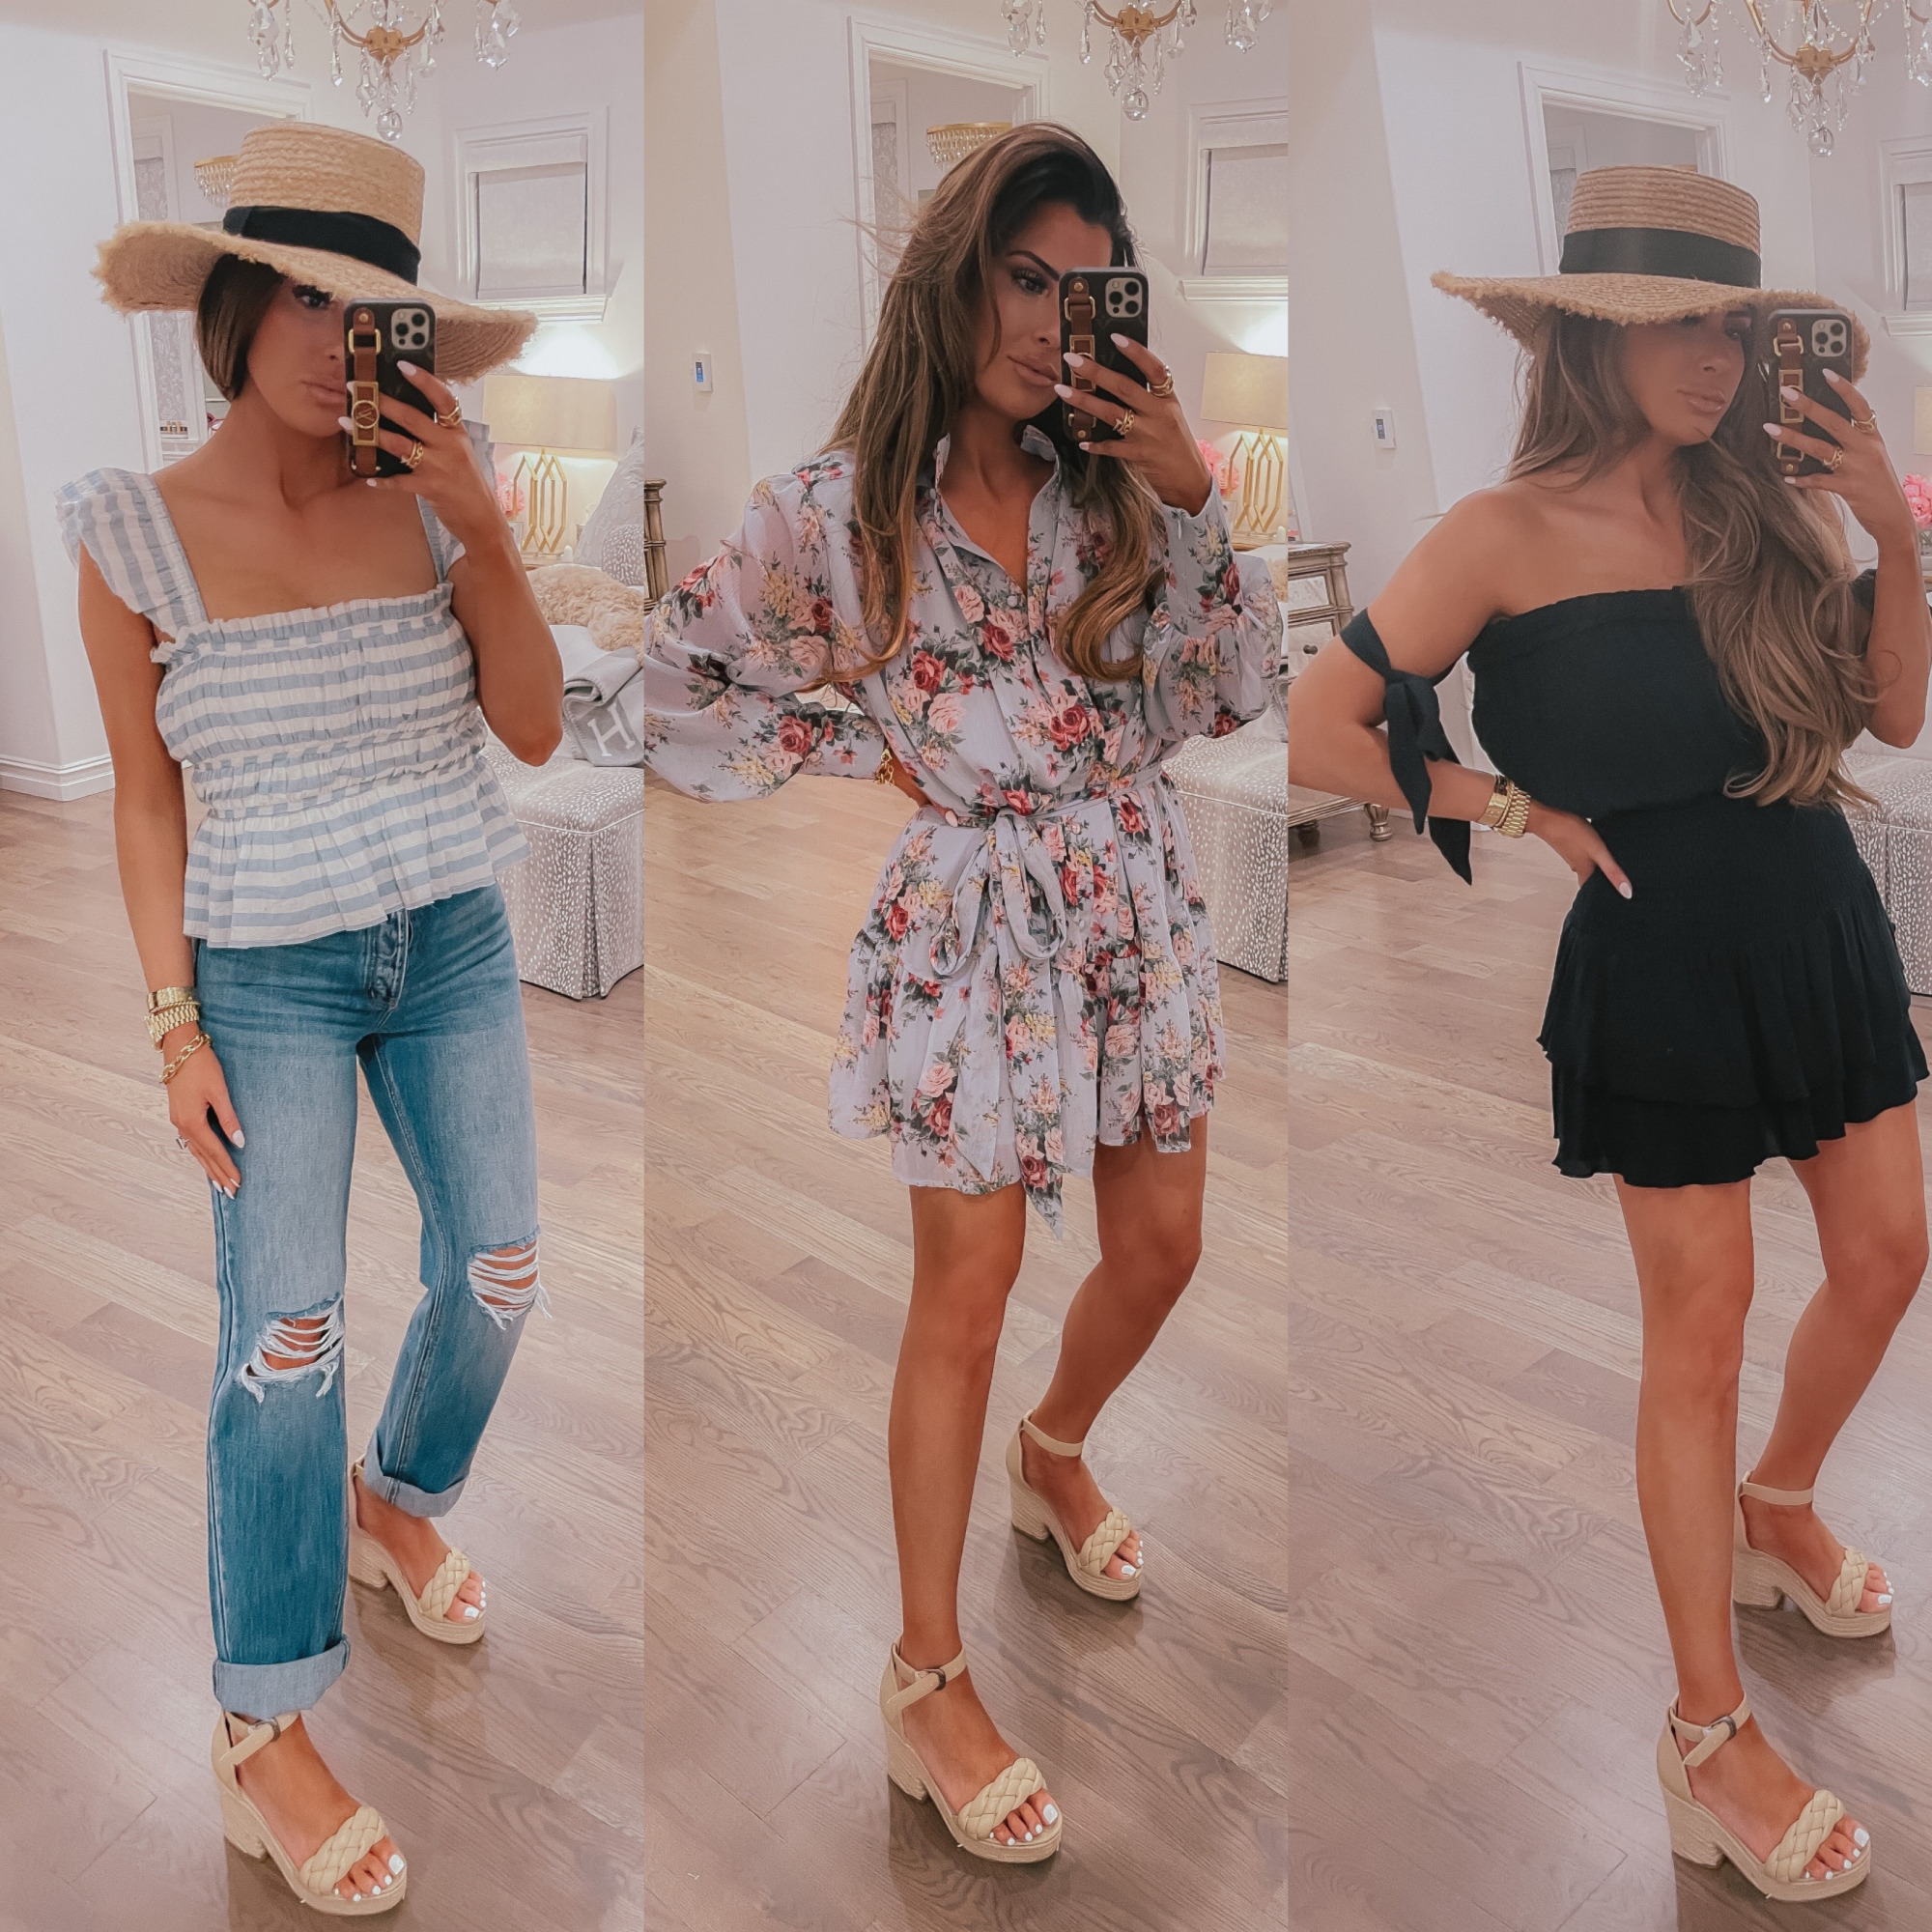 Vici Try On by popular US fashion blog, The Sweetest Thing: collage image of a woman wearing various Vici clothing items.